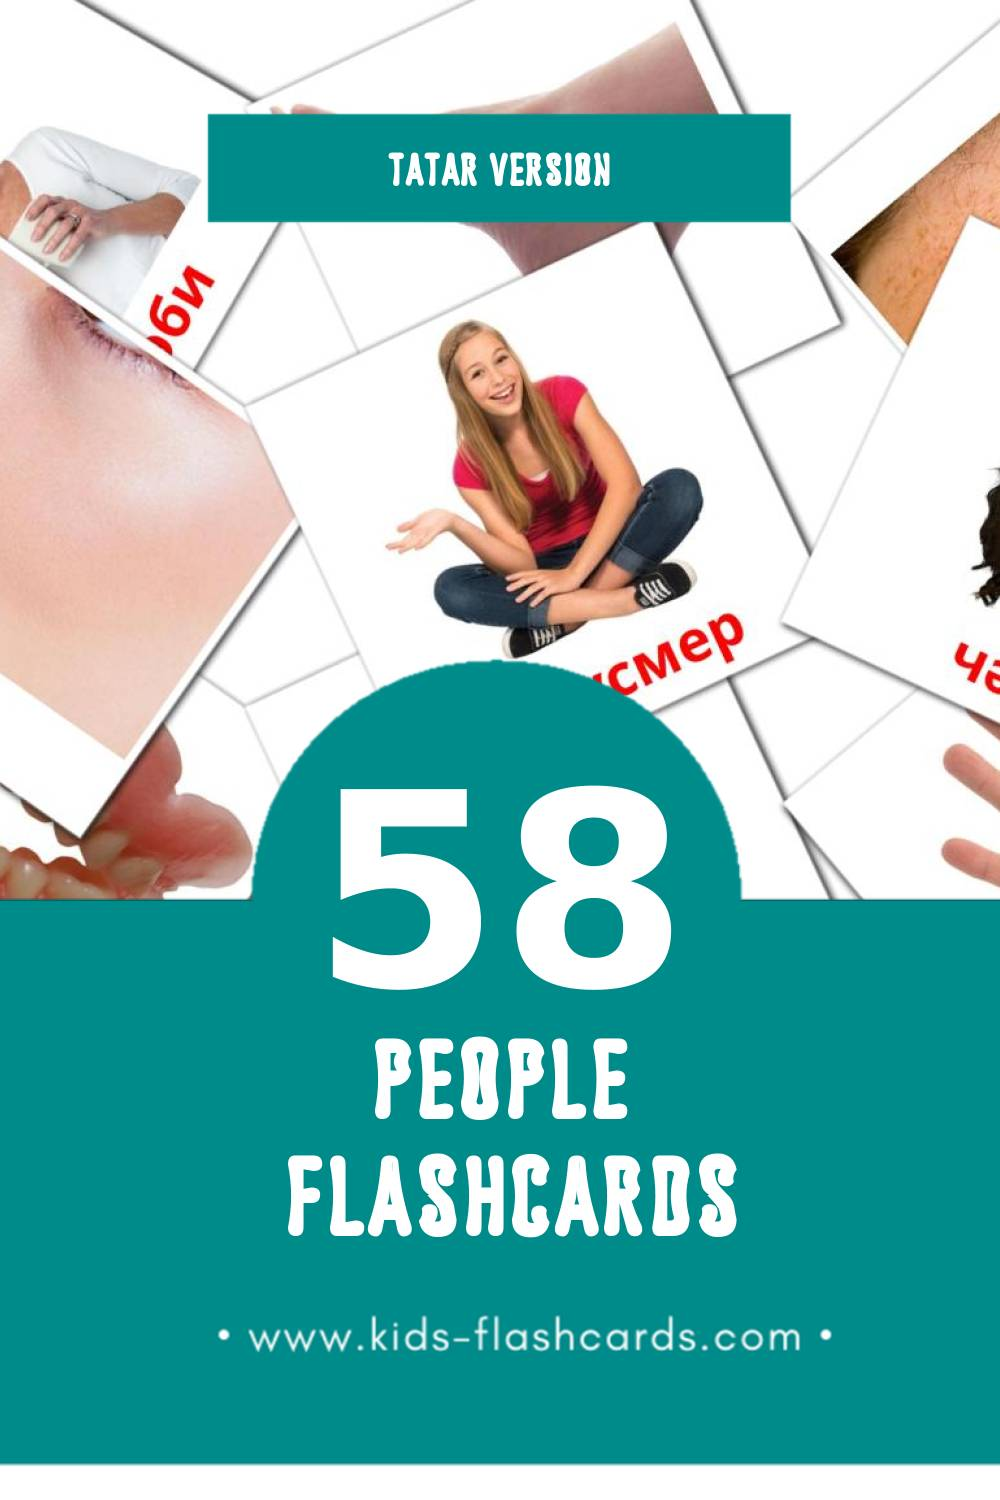 Visual Кеше Flashcards for Toddlers (58 cards in Tatar)